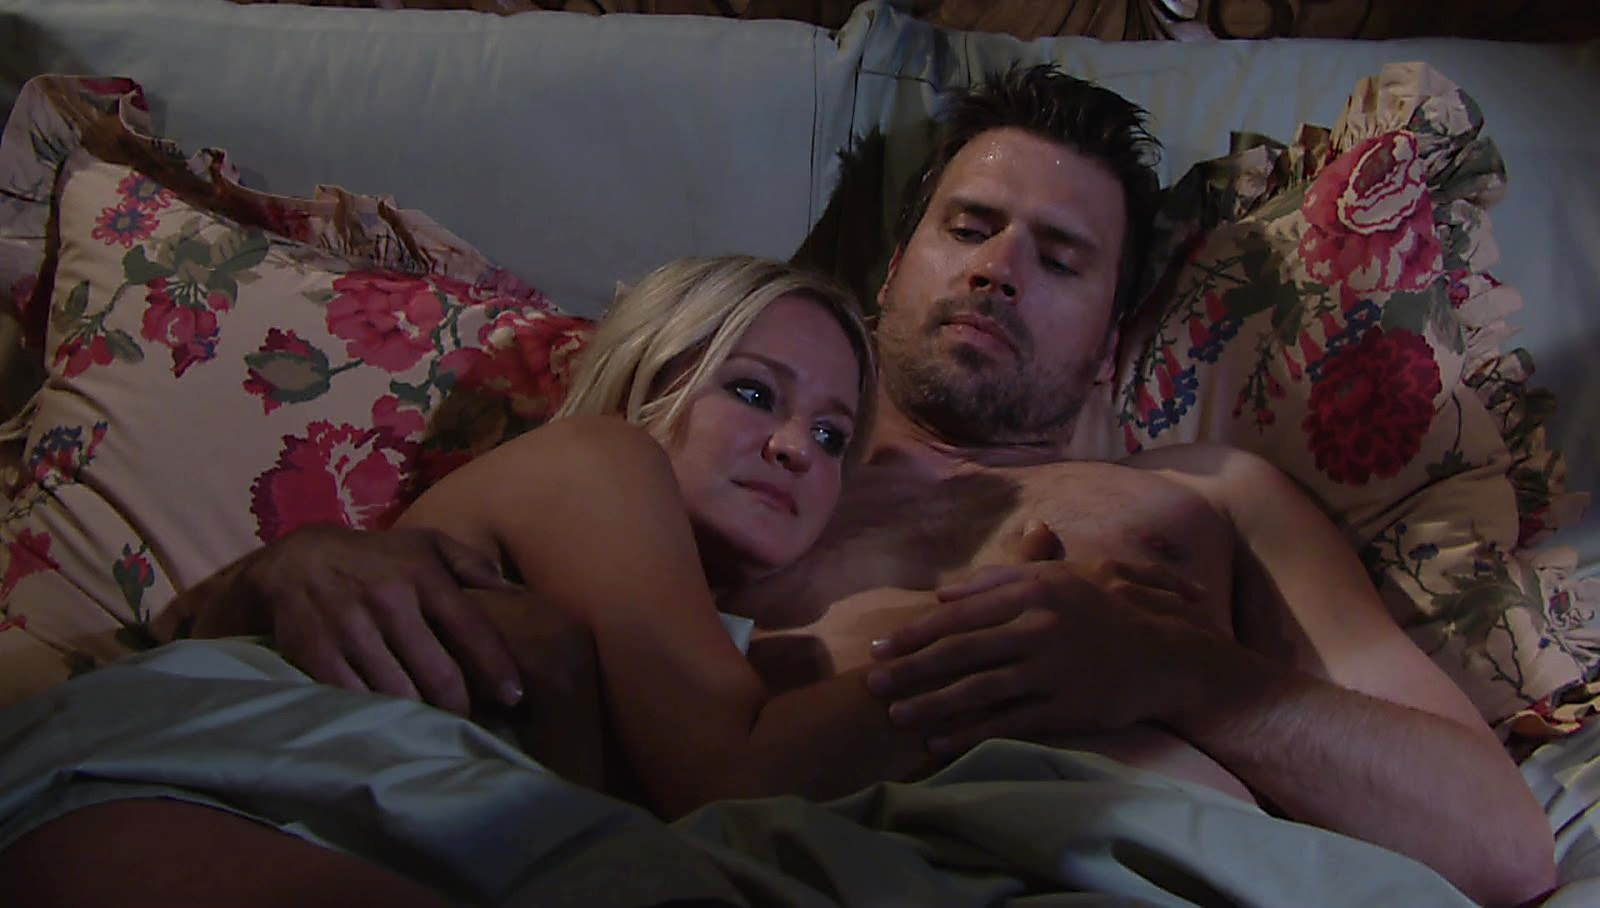 Joshua Morrow sexy shirtless scene May 22, 2018, 12pm